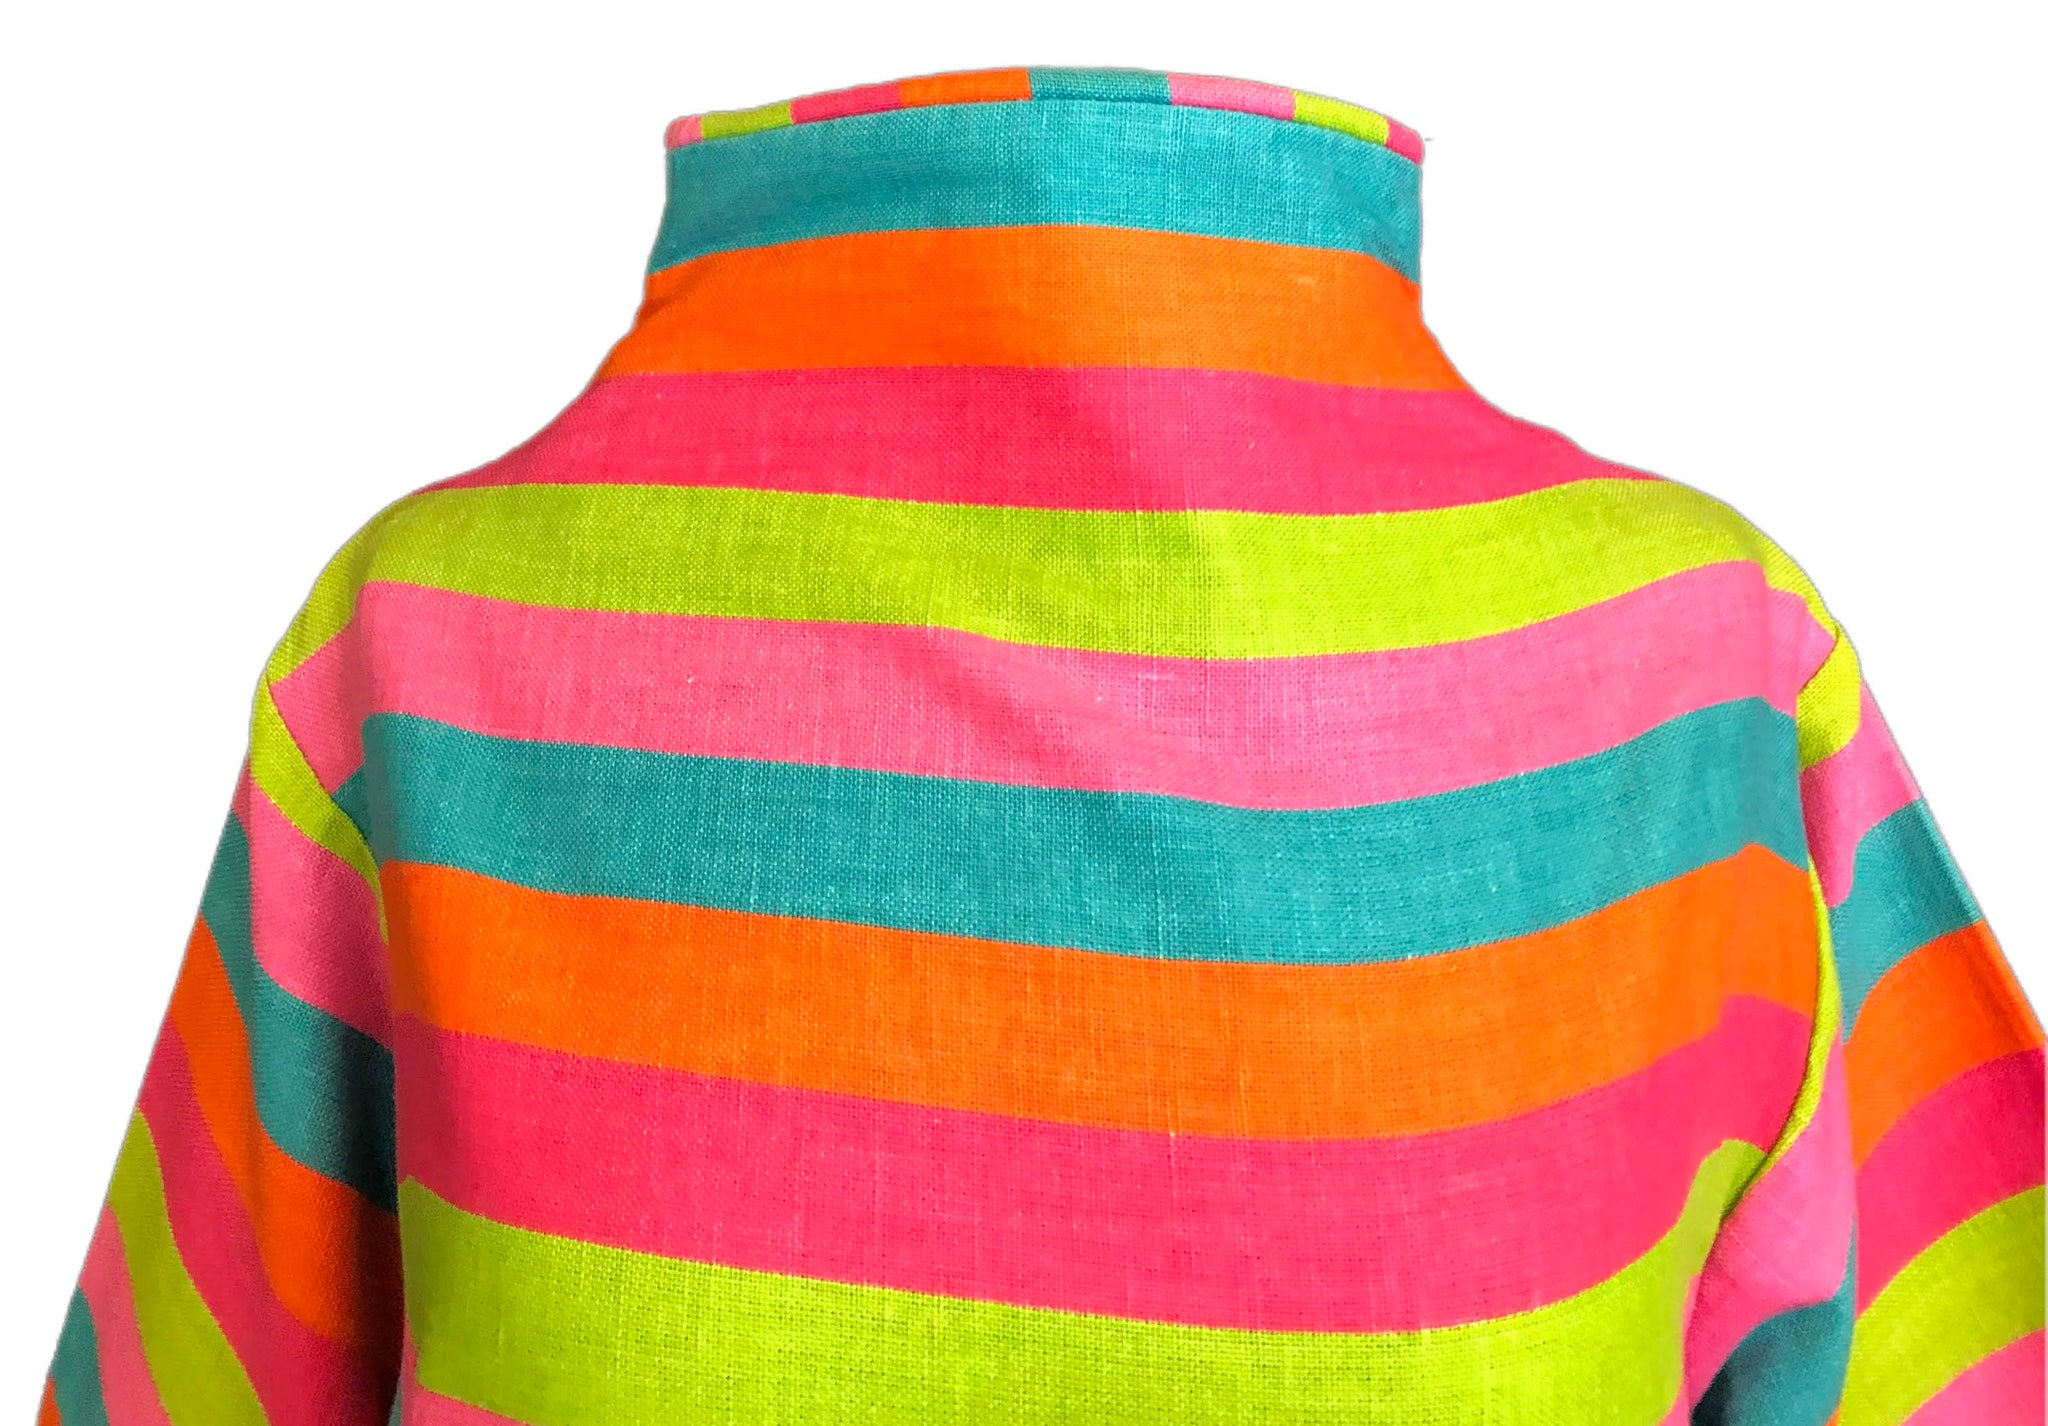 60s Candy Colored Striped Beatnik Shift Dress DETAIL 4 of 6